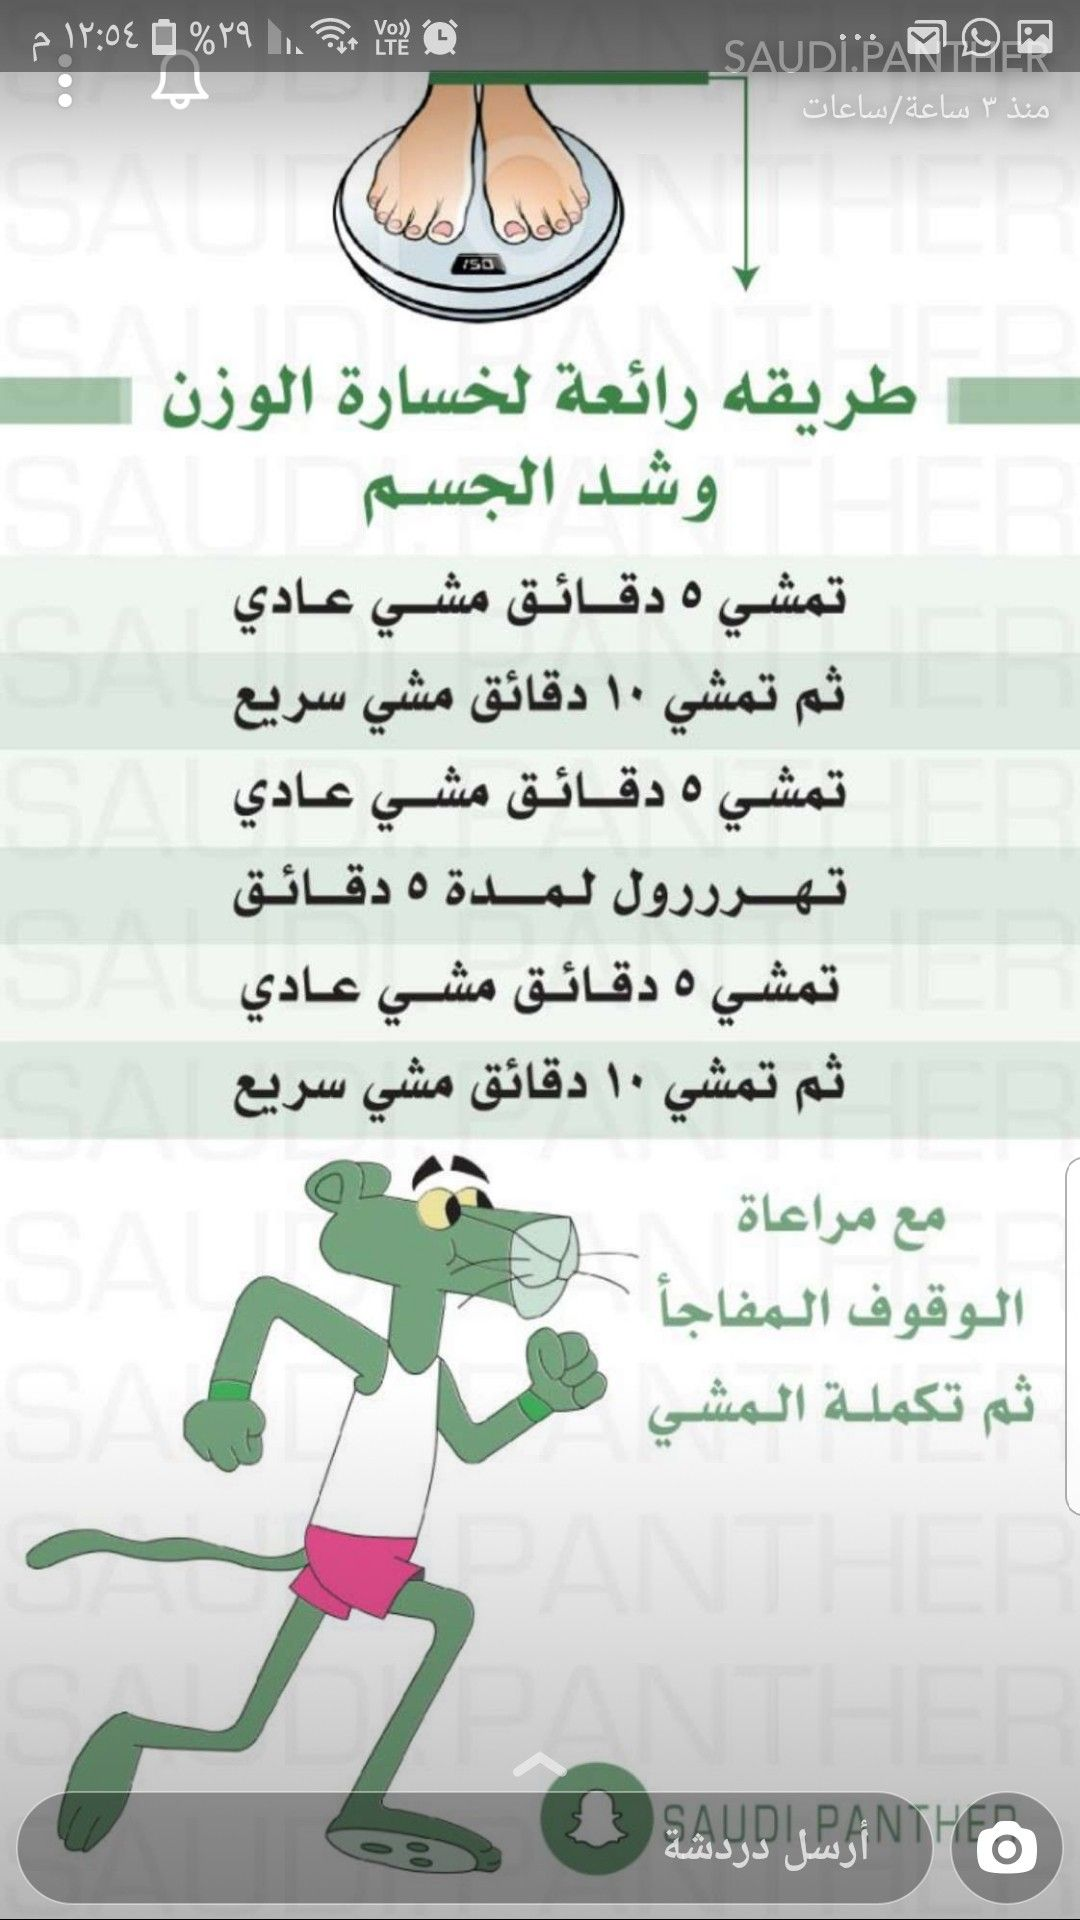 Pin By Ghadur Noor On Excersies Health Facts Fitness Fitness Workout For Women Fitness Healthy Lifestyle